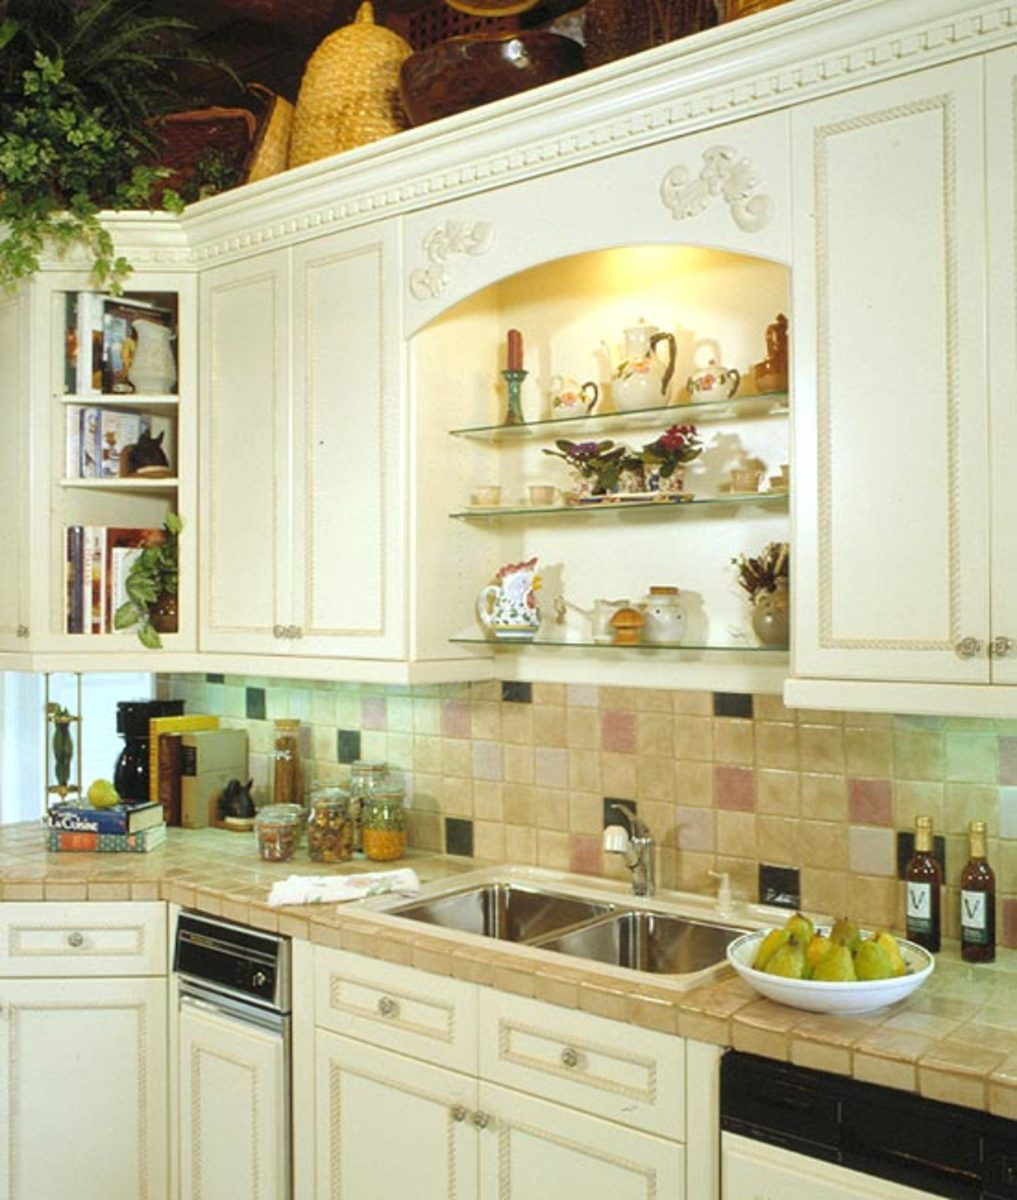 Home remodeling improvement idea alcoves hubpages for Kitchen ideas no window